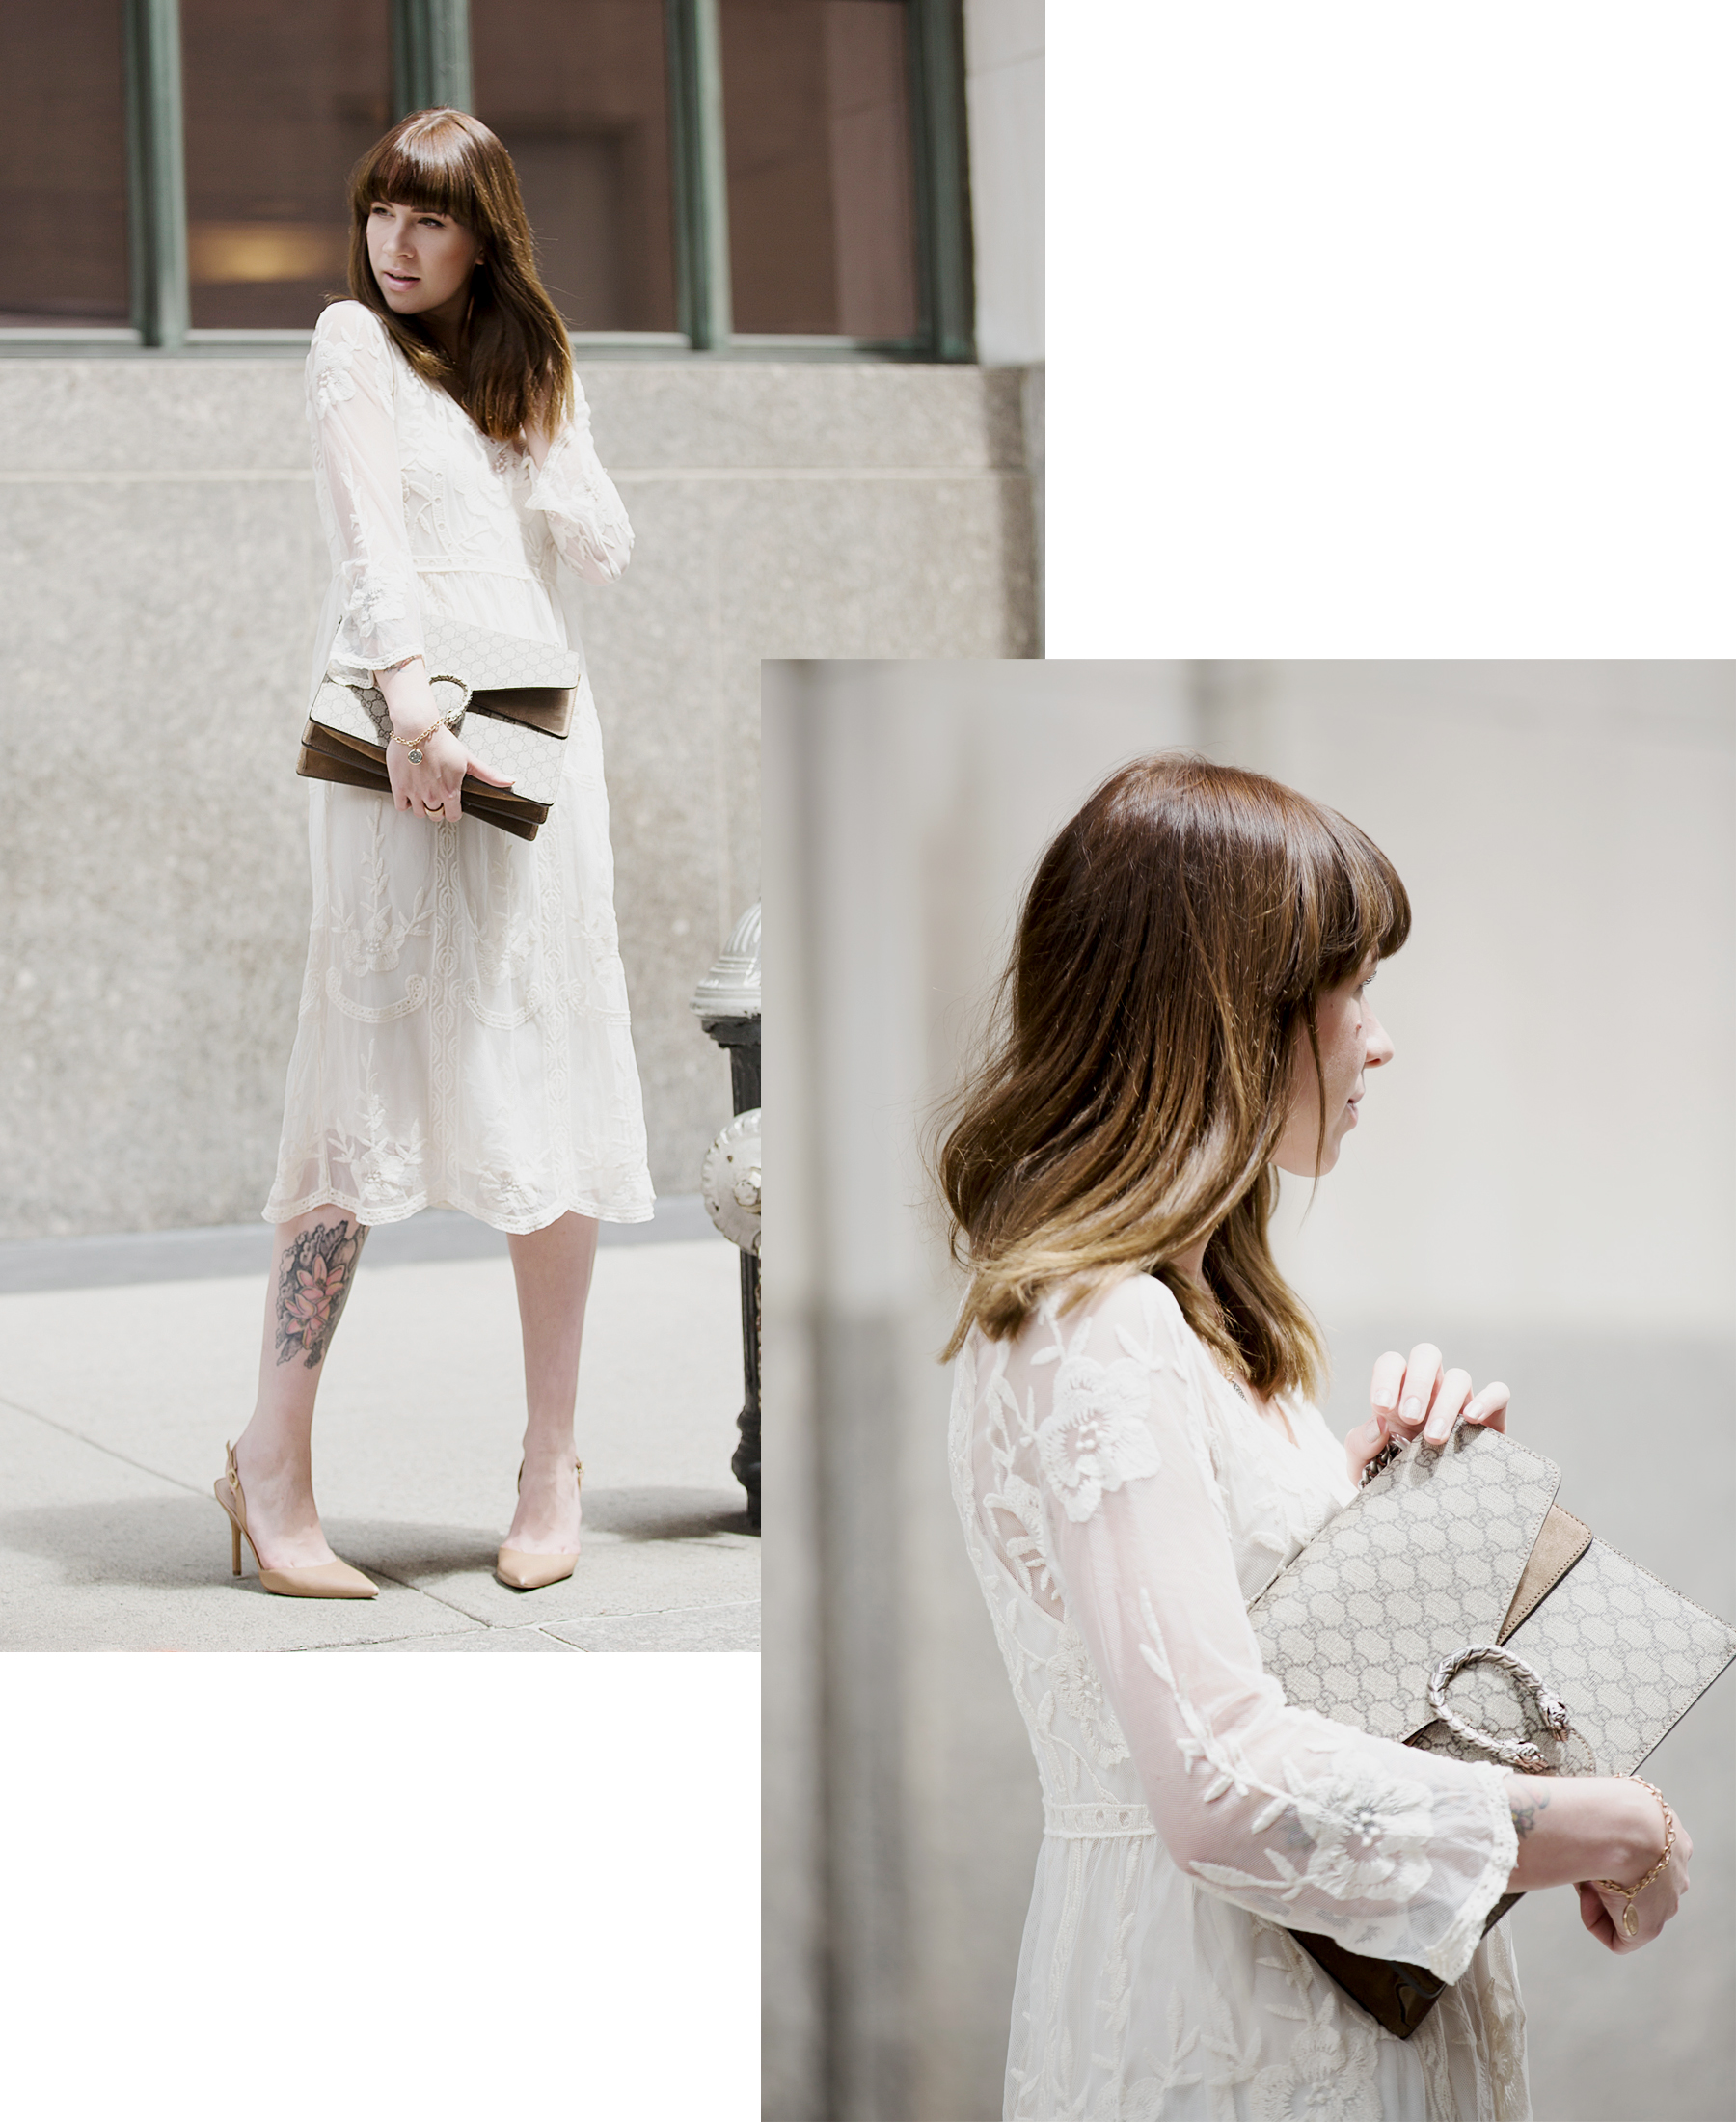 white dress edited the label editedgirls lace bride wedding style fashion fashionblogger new york style streetstyle look lookbook brunette bangs gucci dionysus sam edelman ootd ootn berlin blogger cats & dogs ricarda schernus 6